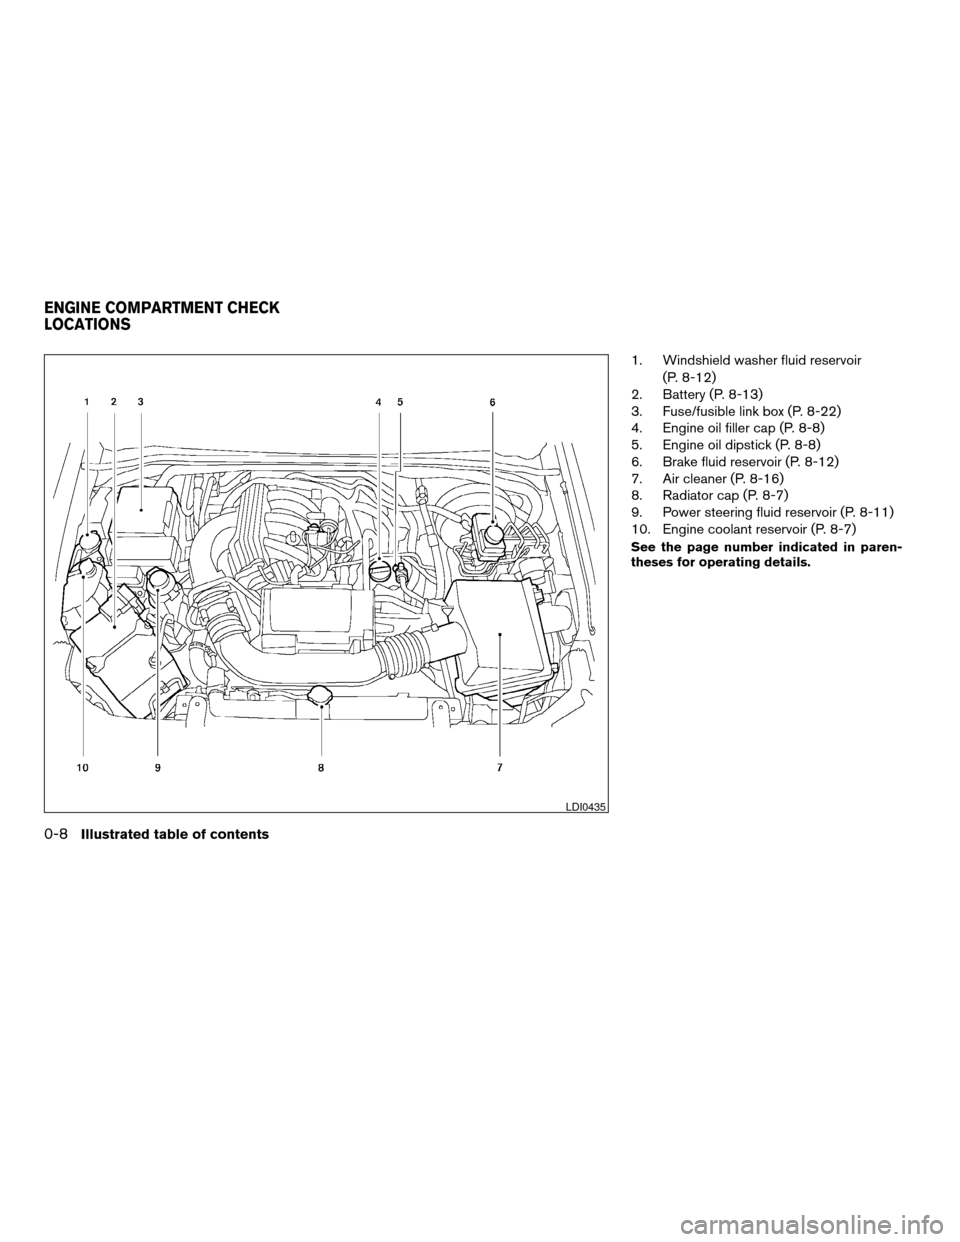 NISSAN PATHFINDER 2005 R51 / 3.G Owners Manual